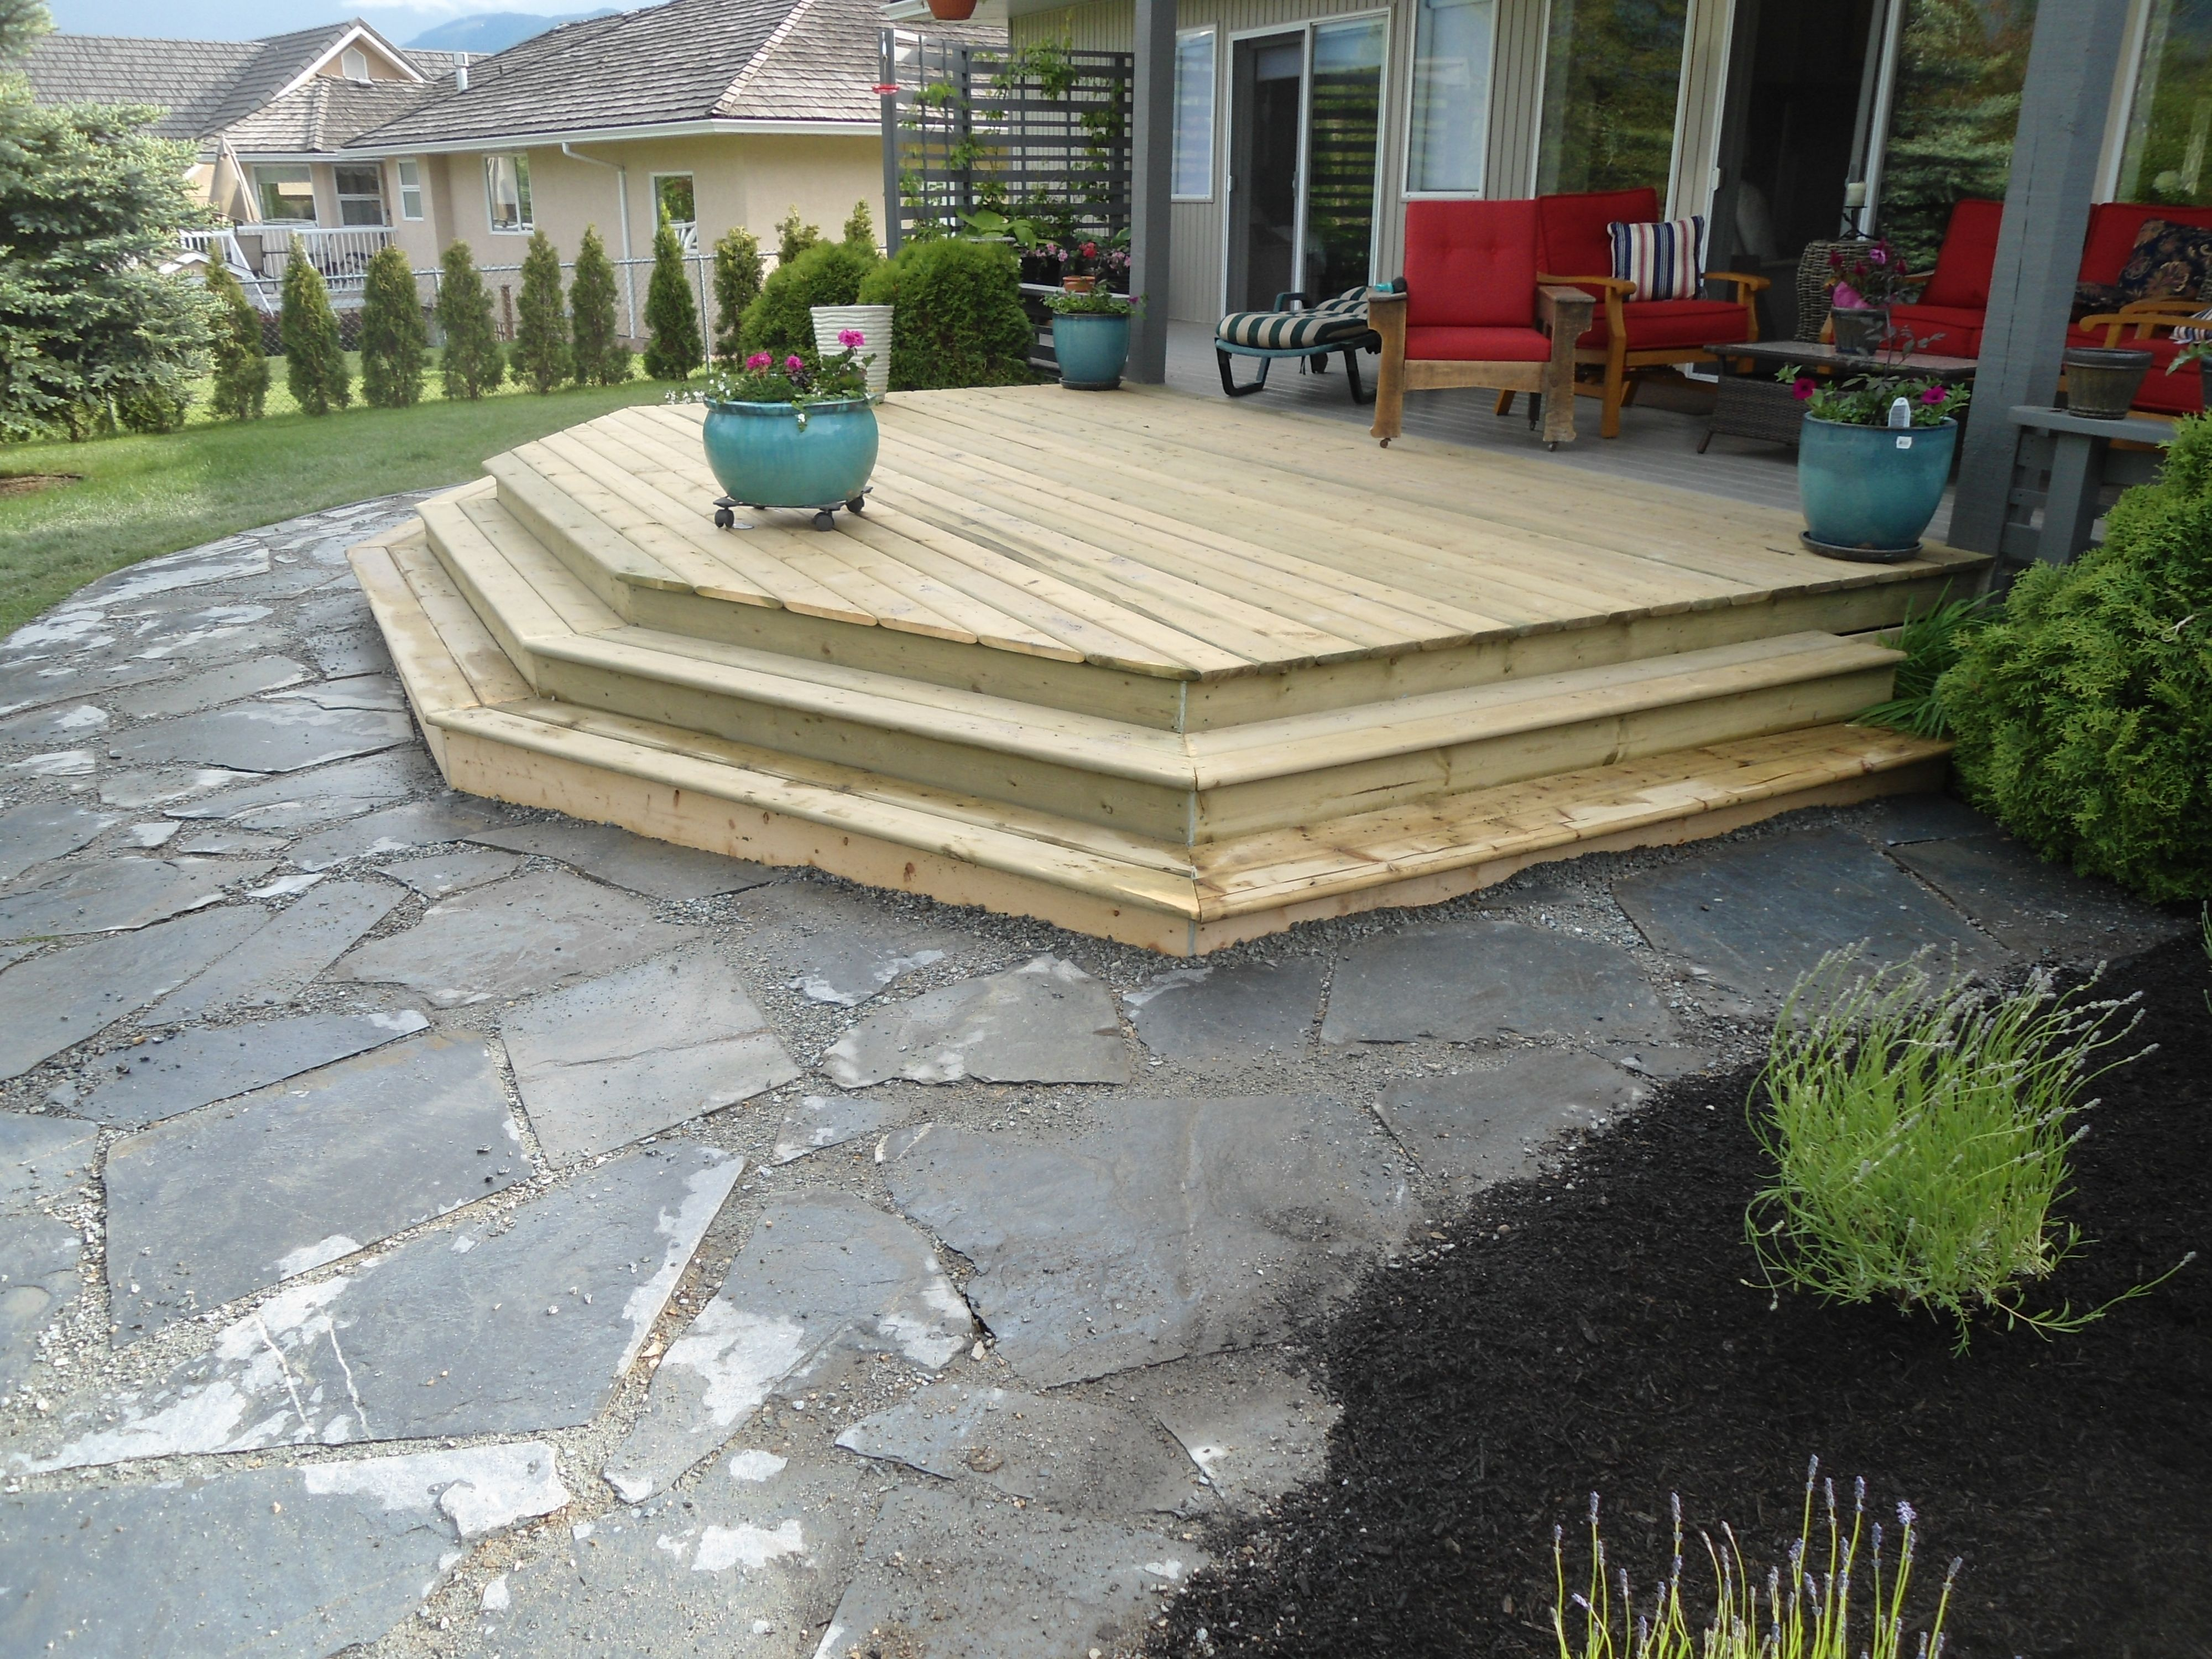 with a new deck and flagstone patio leading to a small pond and